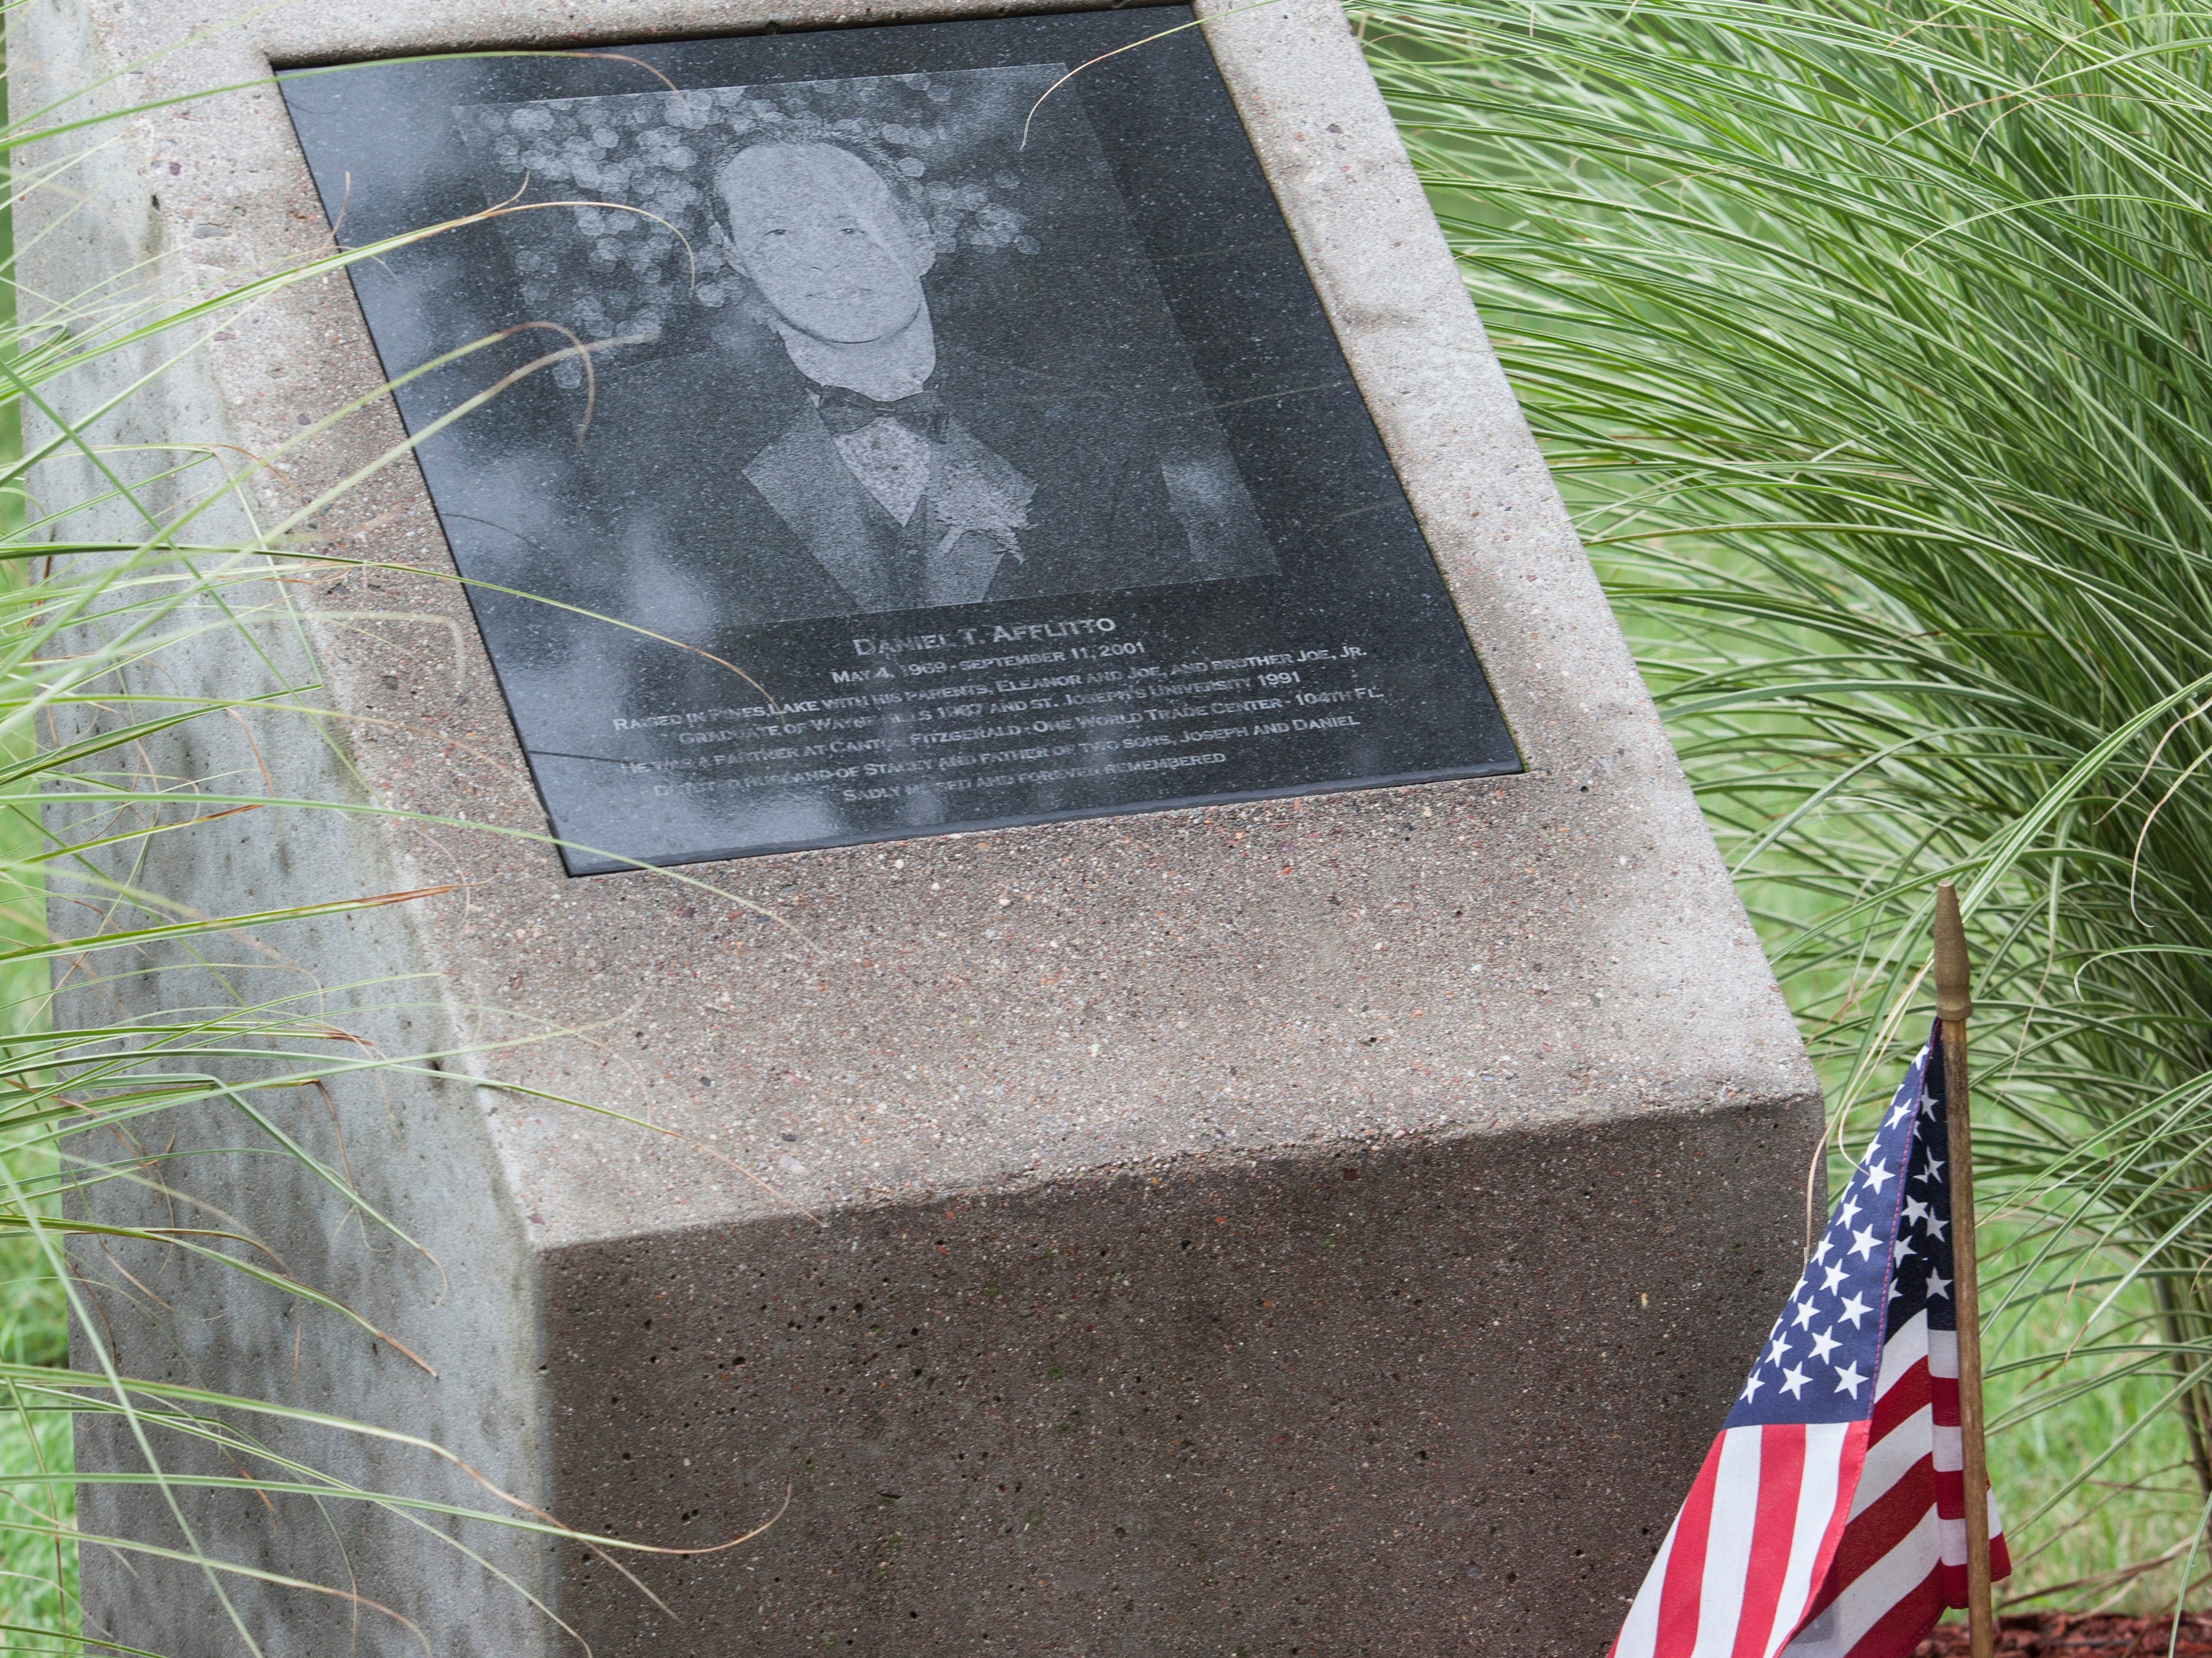 Daniel Afflitto. His memorial is shown here at the Wayne library in Wayne.